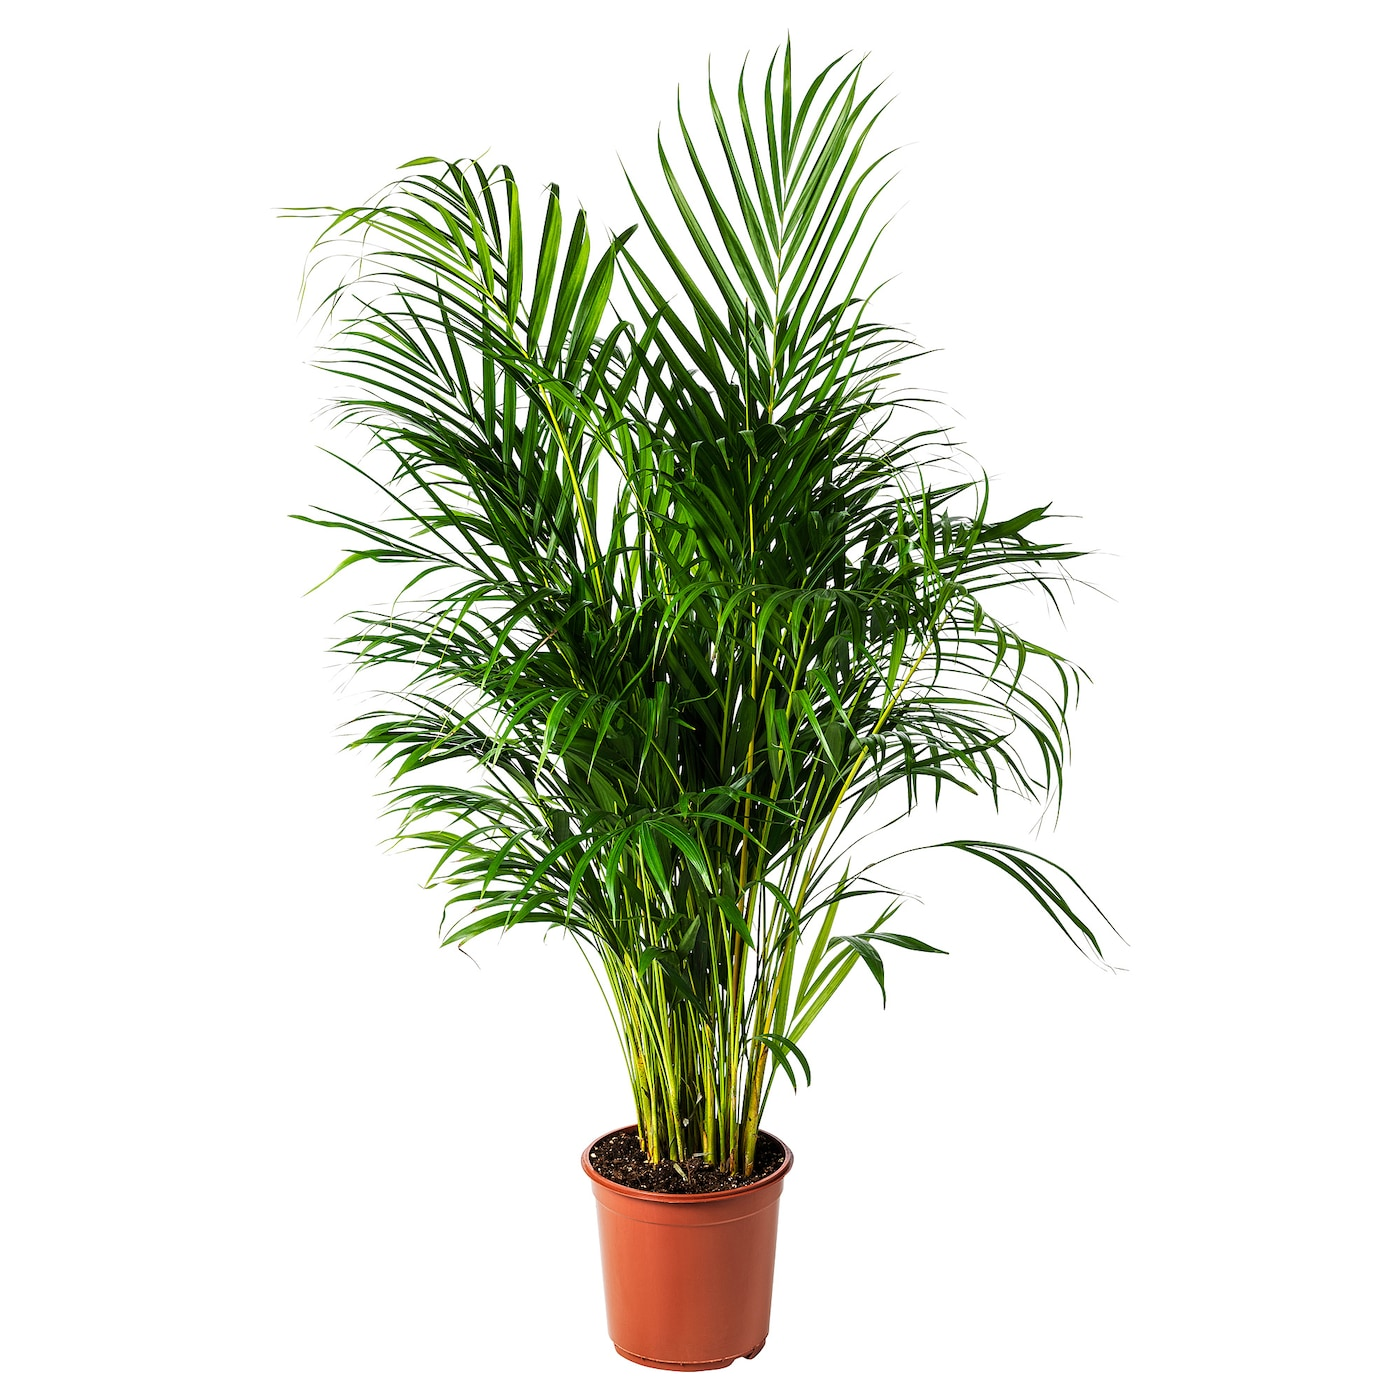 dypsis lutescens potted plant areca palm 24 cm ikea. Black Bedroom Furniture Sets. Home Design Ideas